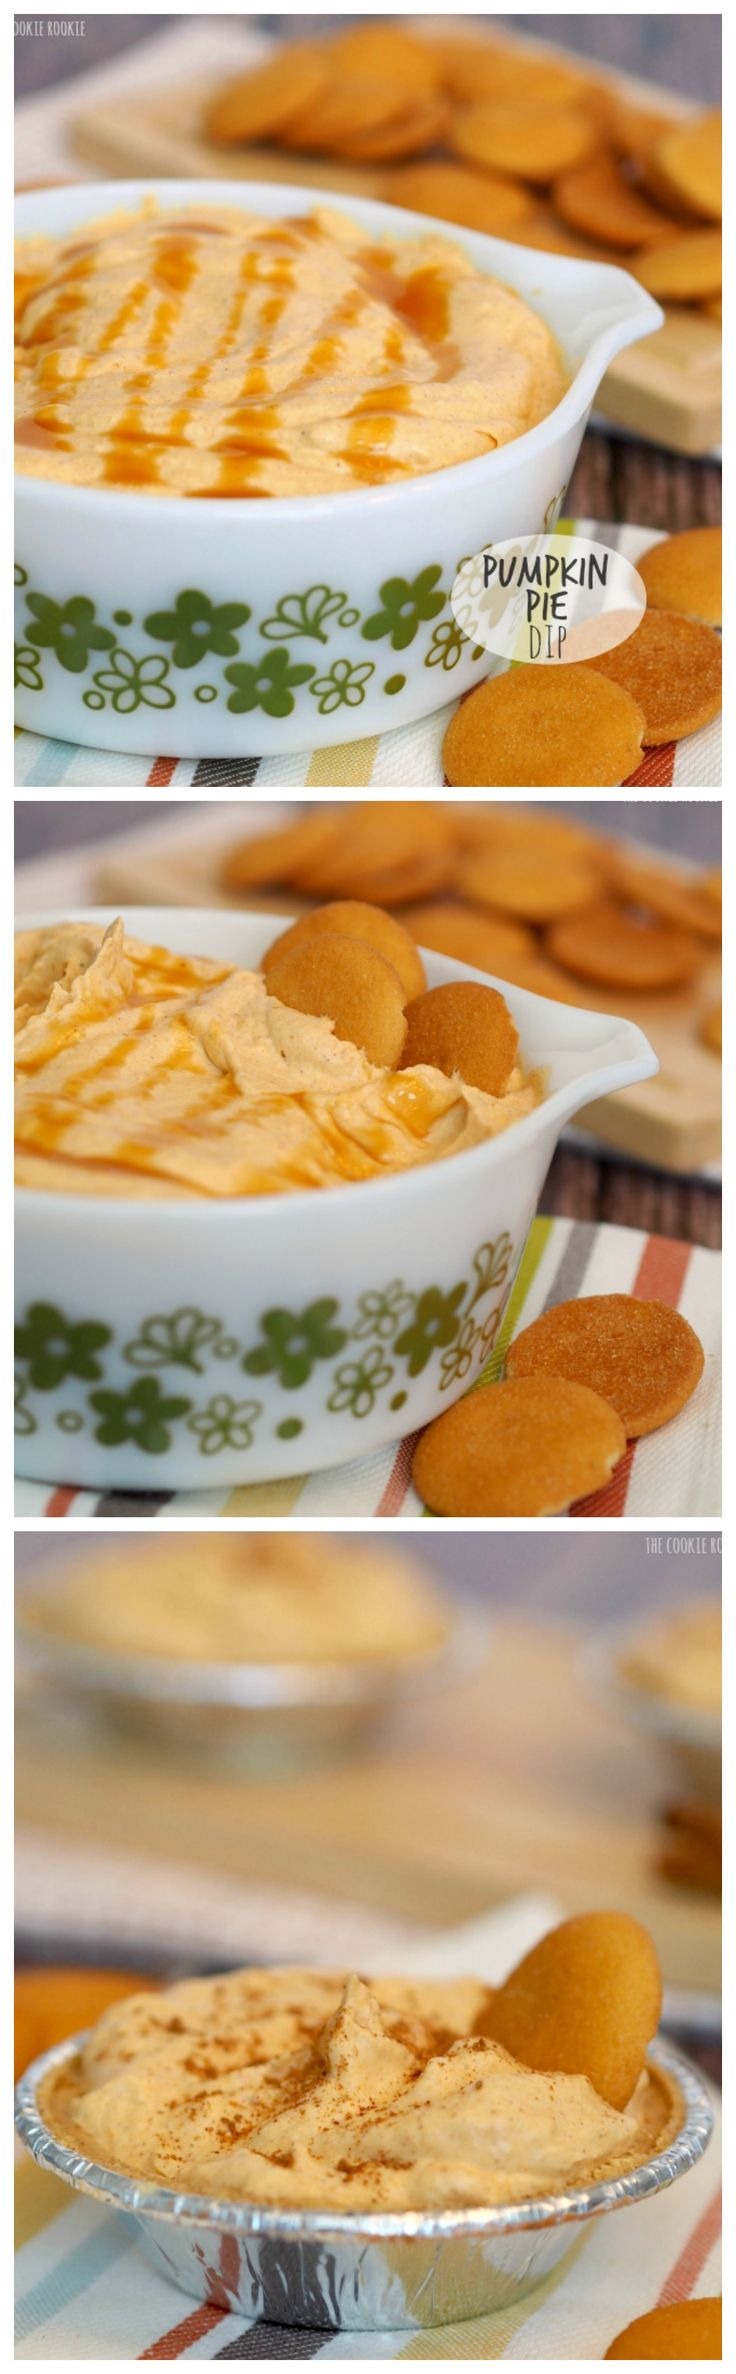 PUMPKIN PIE DIP!!!!! YES! This is the best stuff ever. I could eat it all year! | http://www.thecookierookie.com/pumpkin-pie-dip/ |